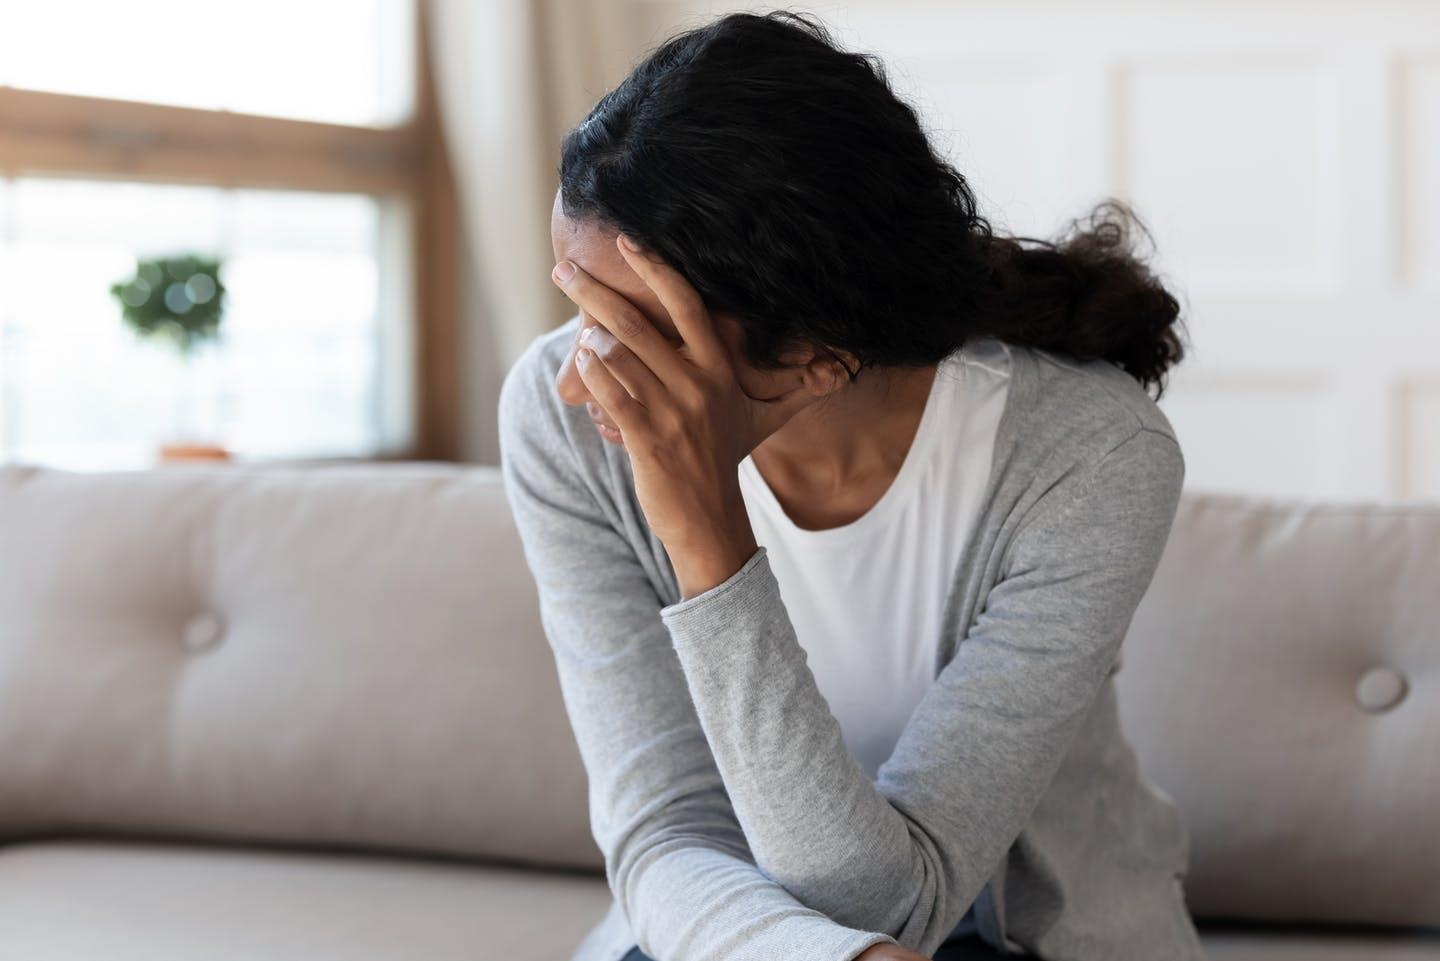 What causes miscarriages? An expert explains why women shouldn't blame themselves - Yahoo News